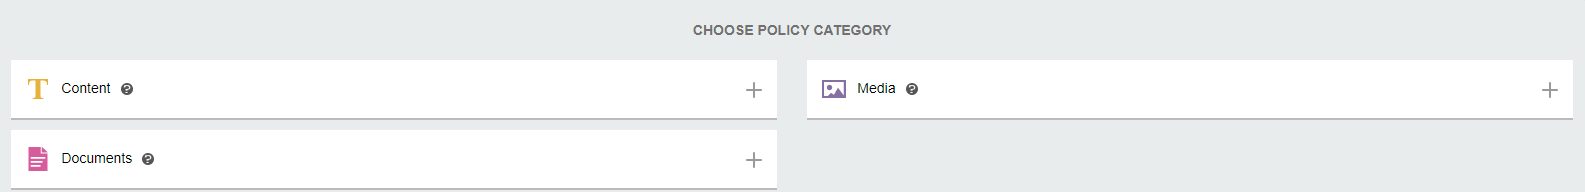 Policy Categories, Content, Documents, Media